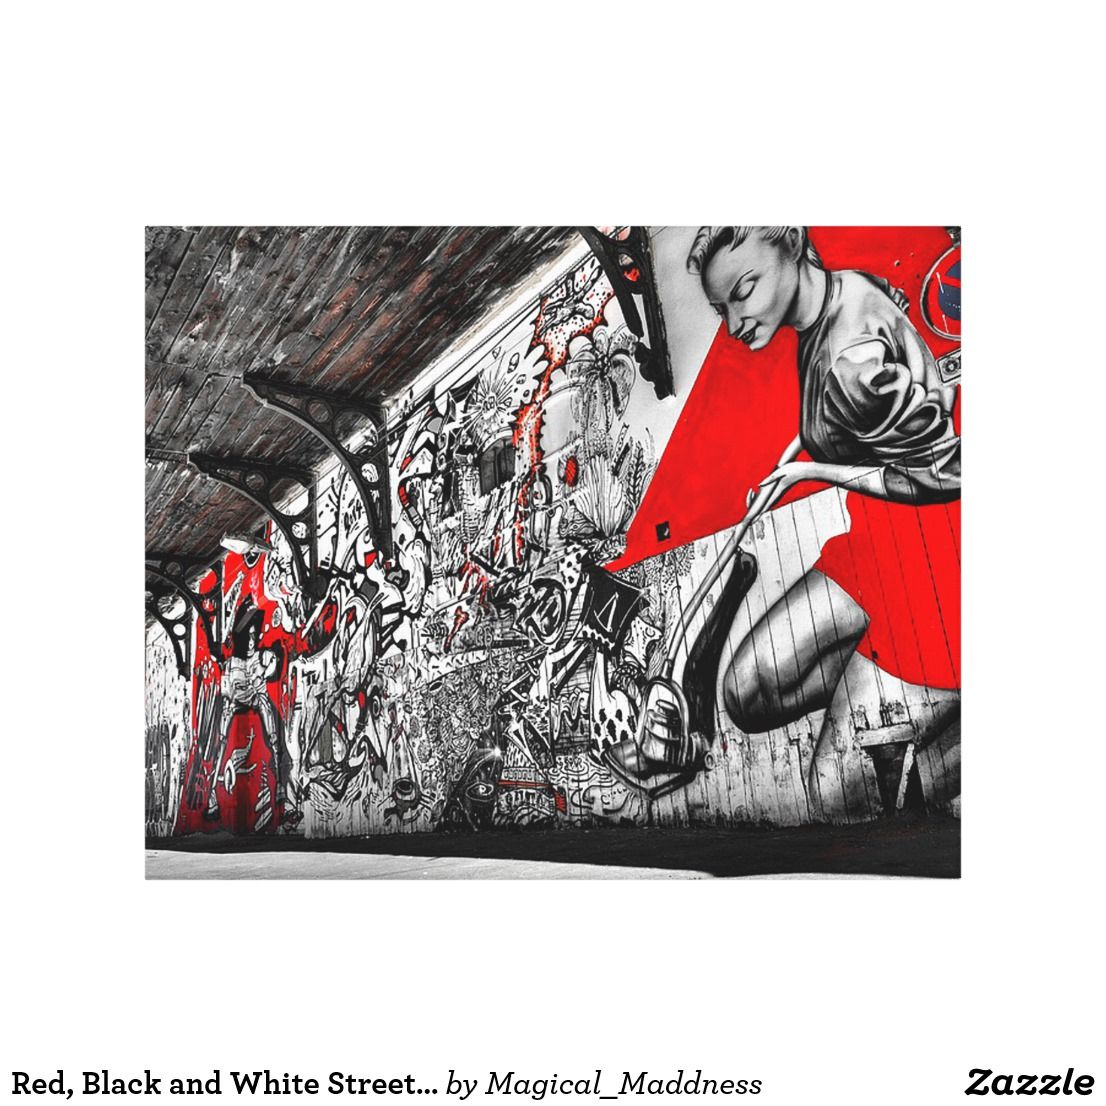 Red black and white street art graffiti wall art in walls